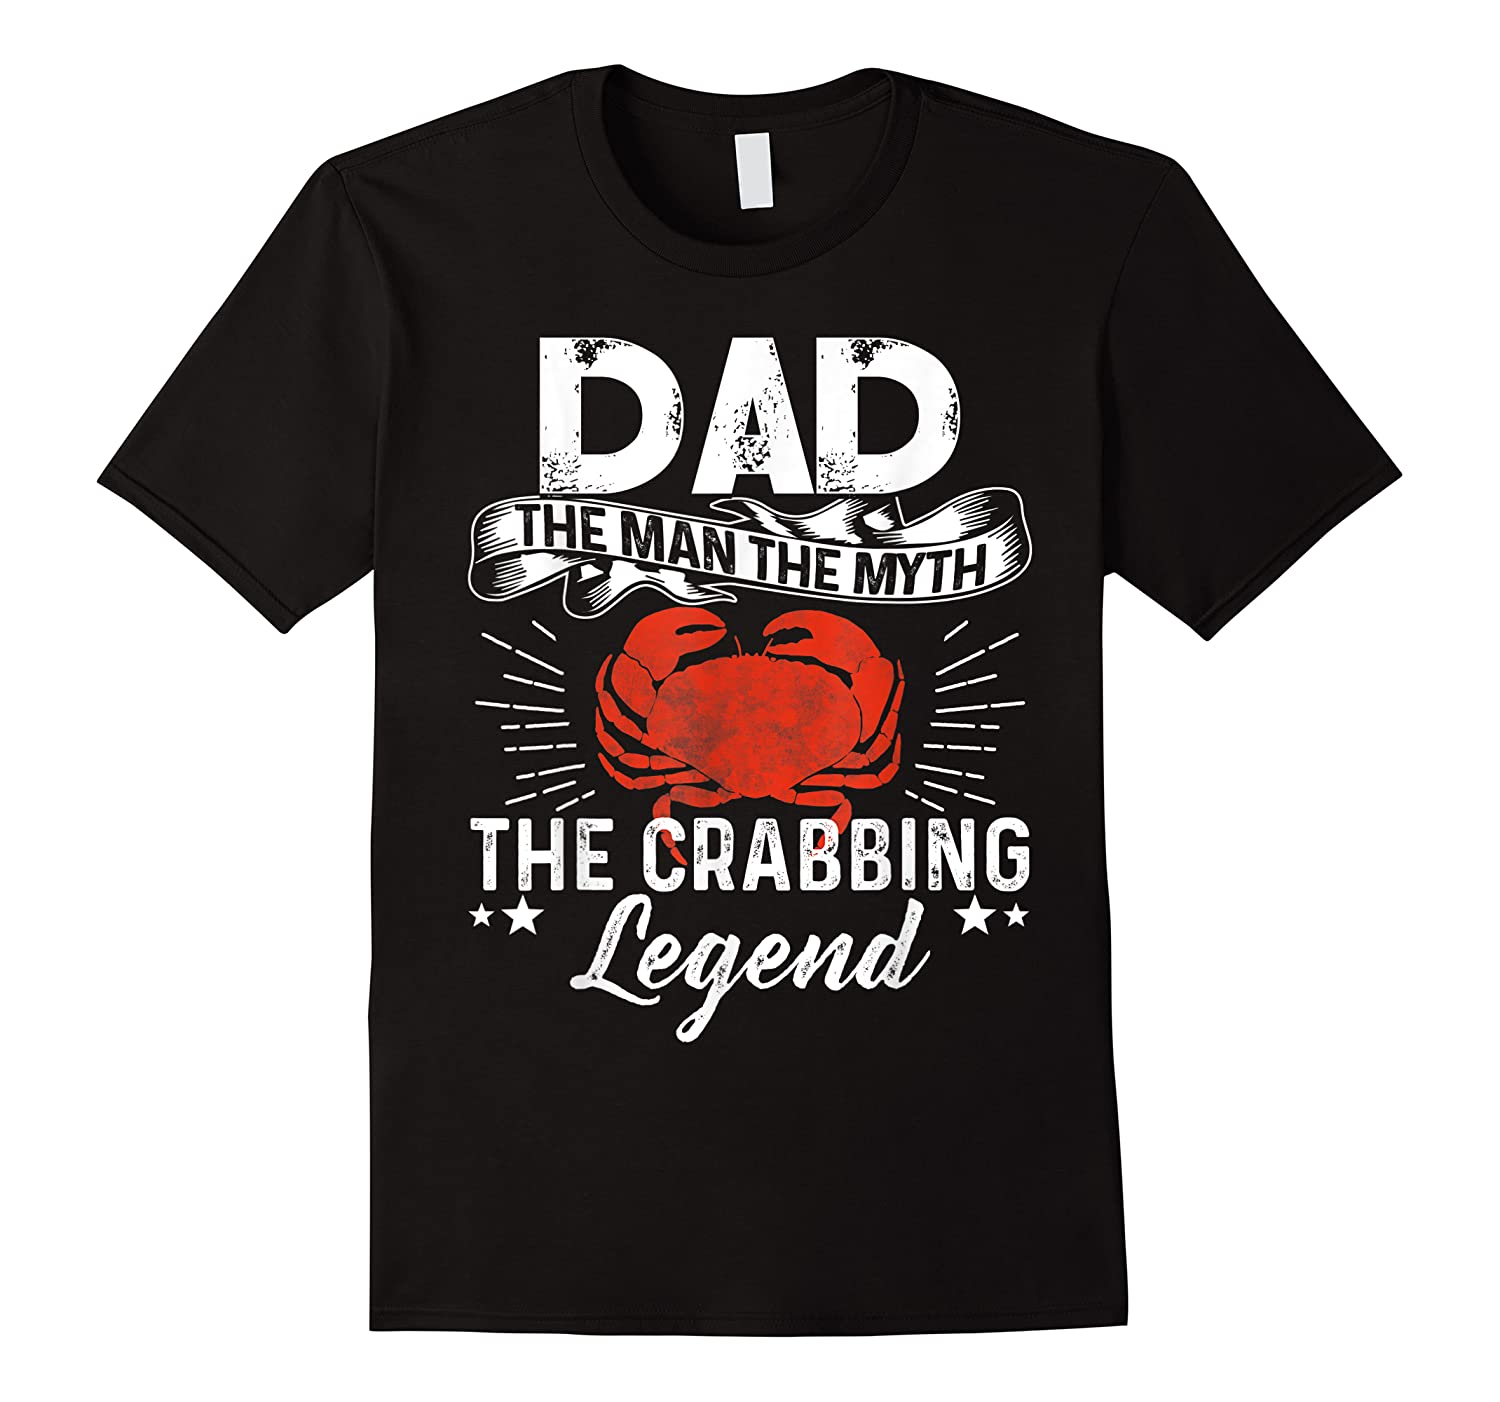 Dad The Man The Myth The Crabbing Legend Fathers Day Shirts